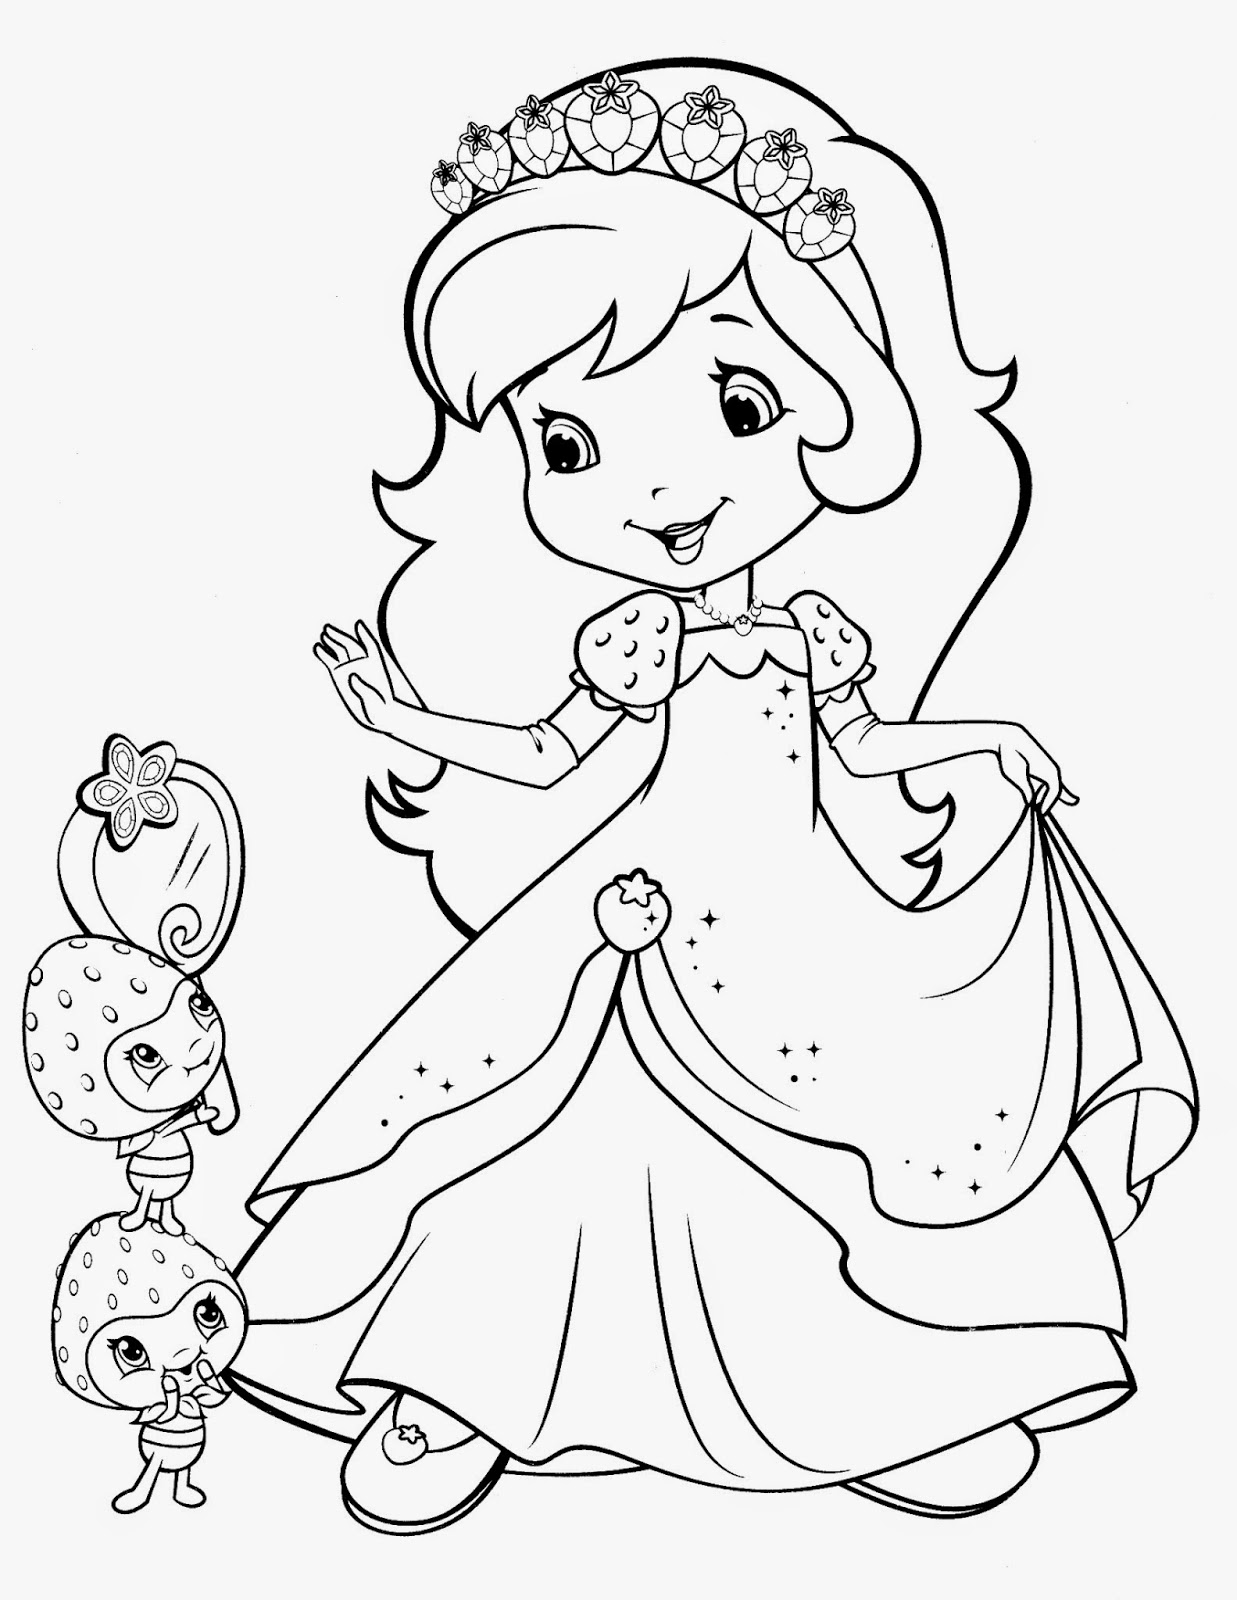 new strawberry shortcake coloring pages printable strawberry shortcake coloring pages and coloring on pinterest pages shortcake coloring new strawberry printable